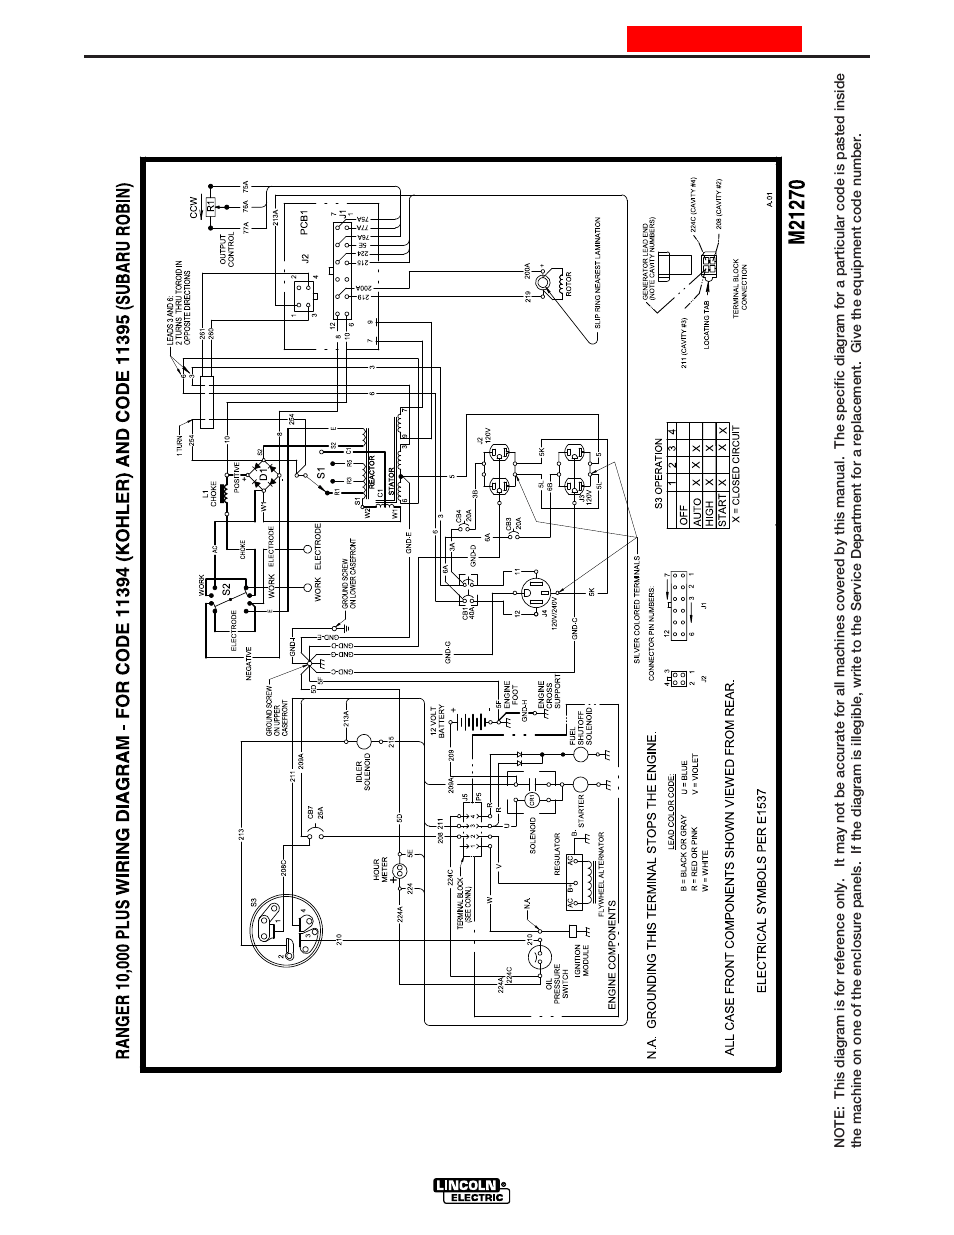 hight resolution of diagrams lincoln electric im925 ranger 10 000 plus user manual page 31 37